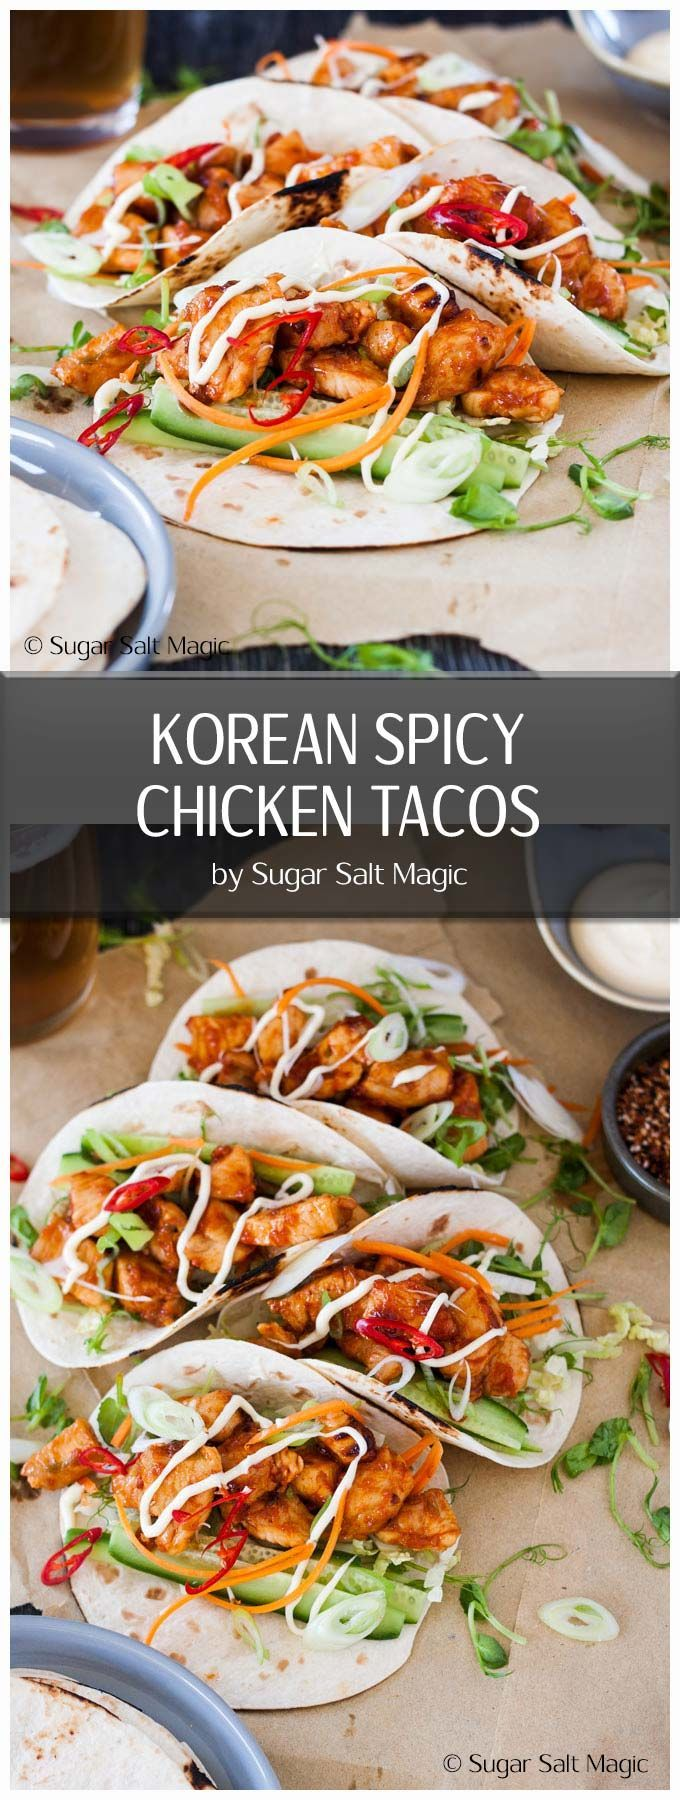 Korean Spicy Chicken Tacos - Punchy Korean flavours combine to make these Korean Spicy Chicken Tacos an easy weeknight dinner for your family or a great party dish. via @sugarsaltmagic